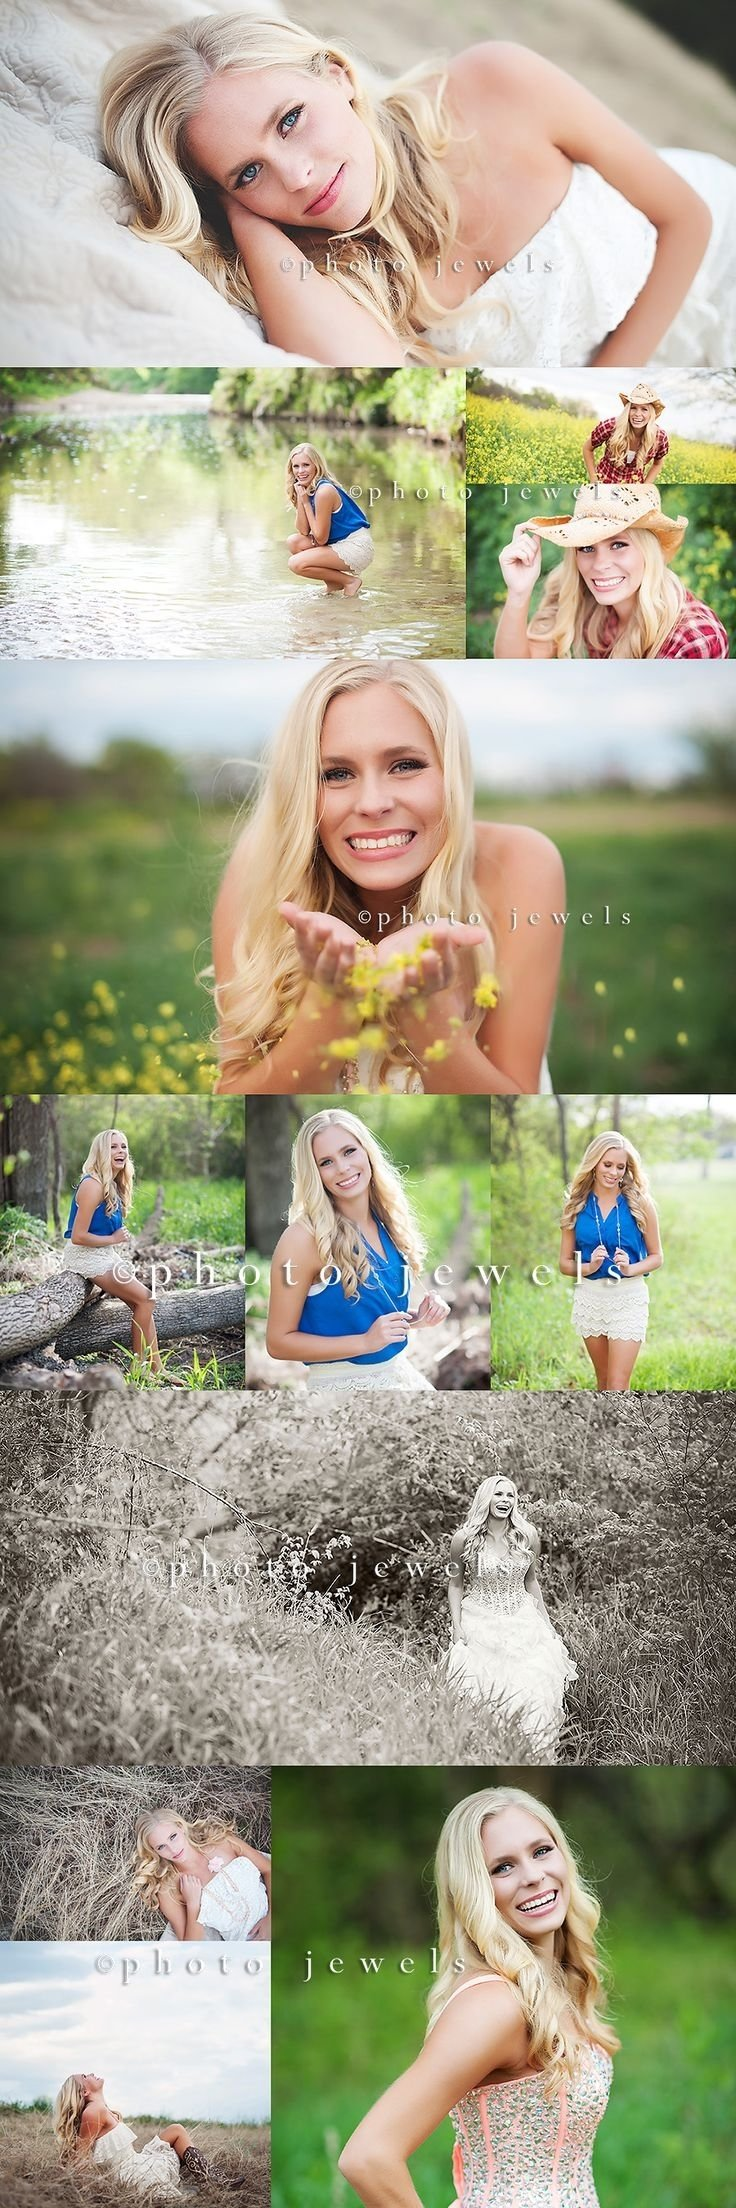 10 Pretty Senior Picture Ideas For Girls Outside 258 best senior picture ideas images on pinterest photo poses 2020